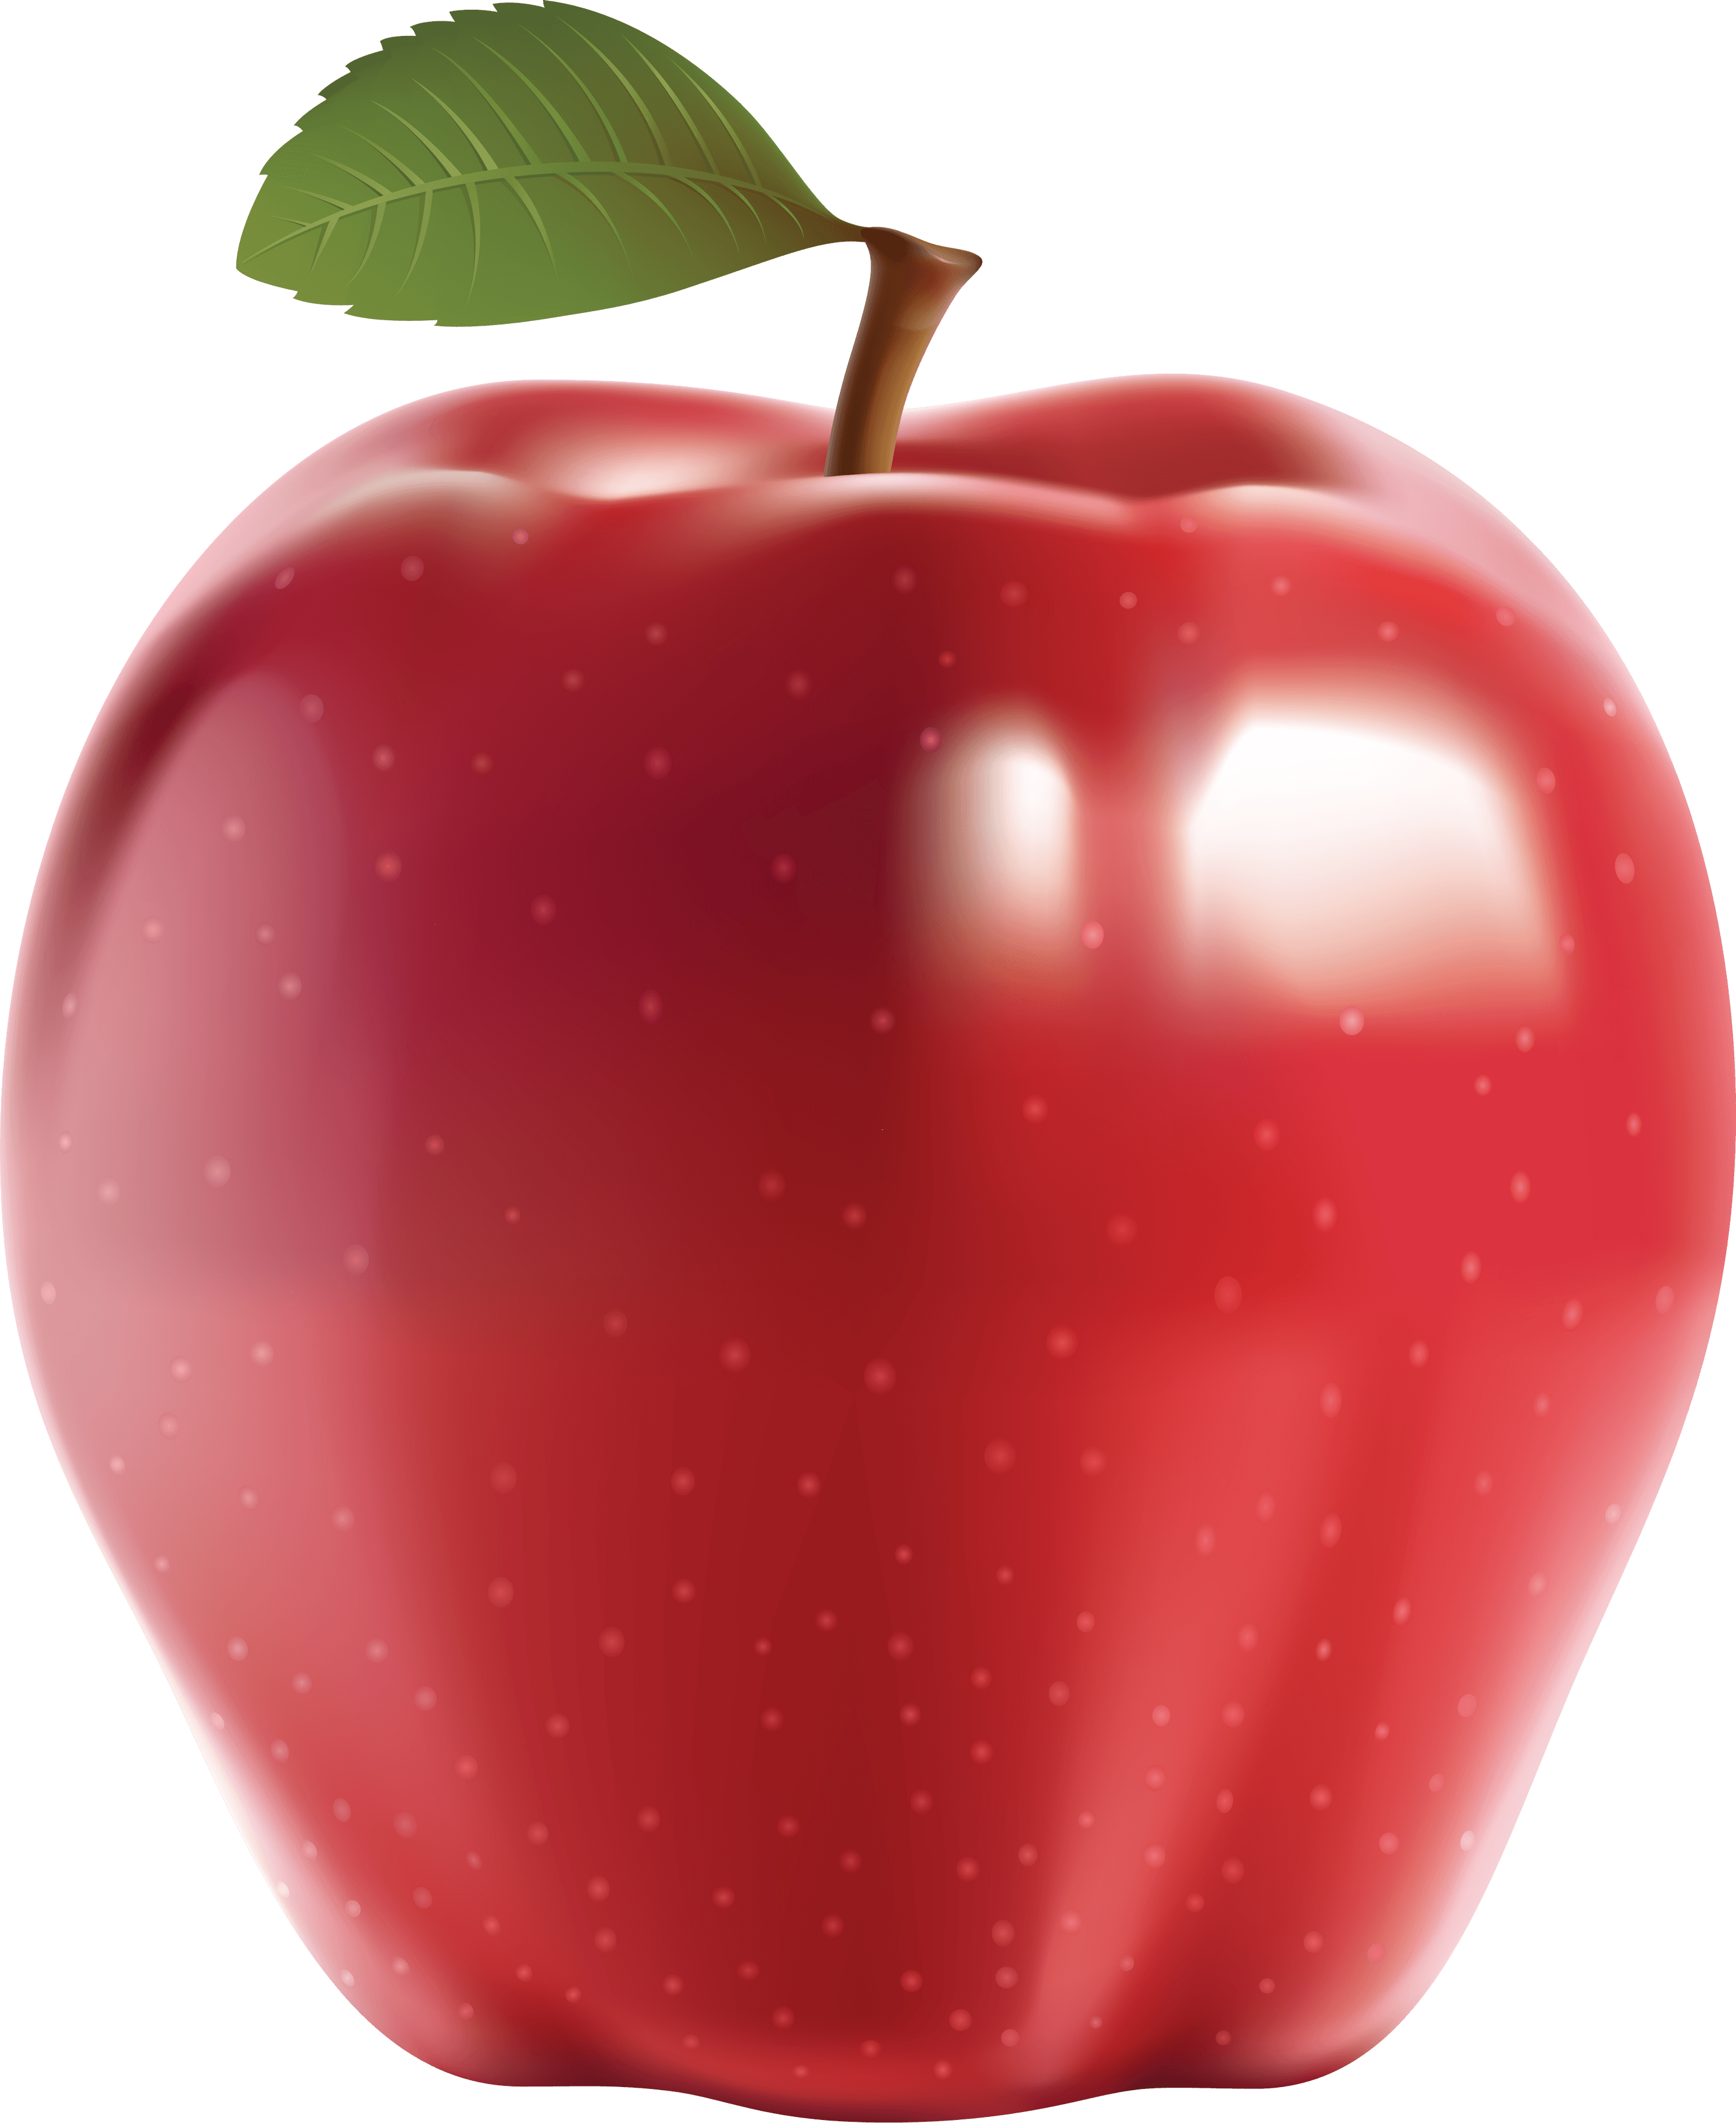 download red apple png image hq png image freepngimg donald duck clip art free rubber duck clip art free